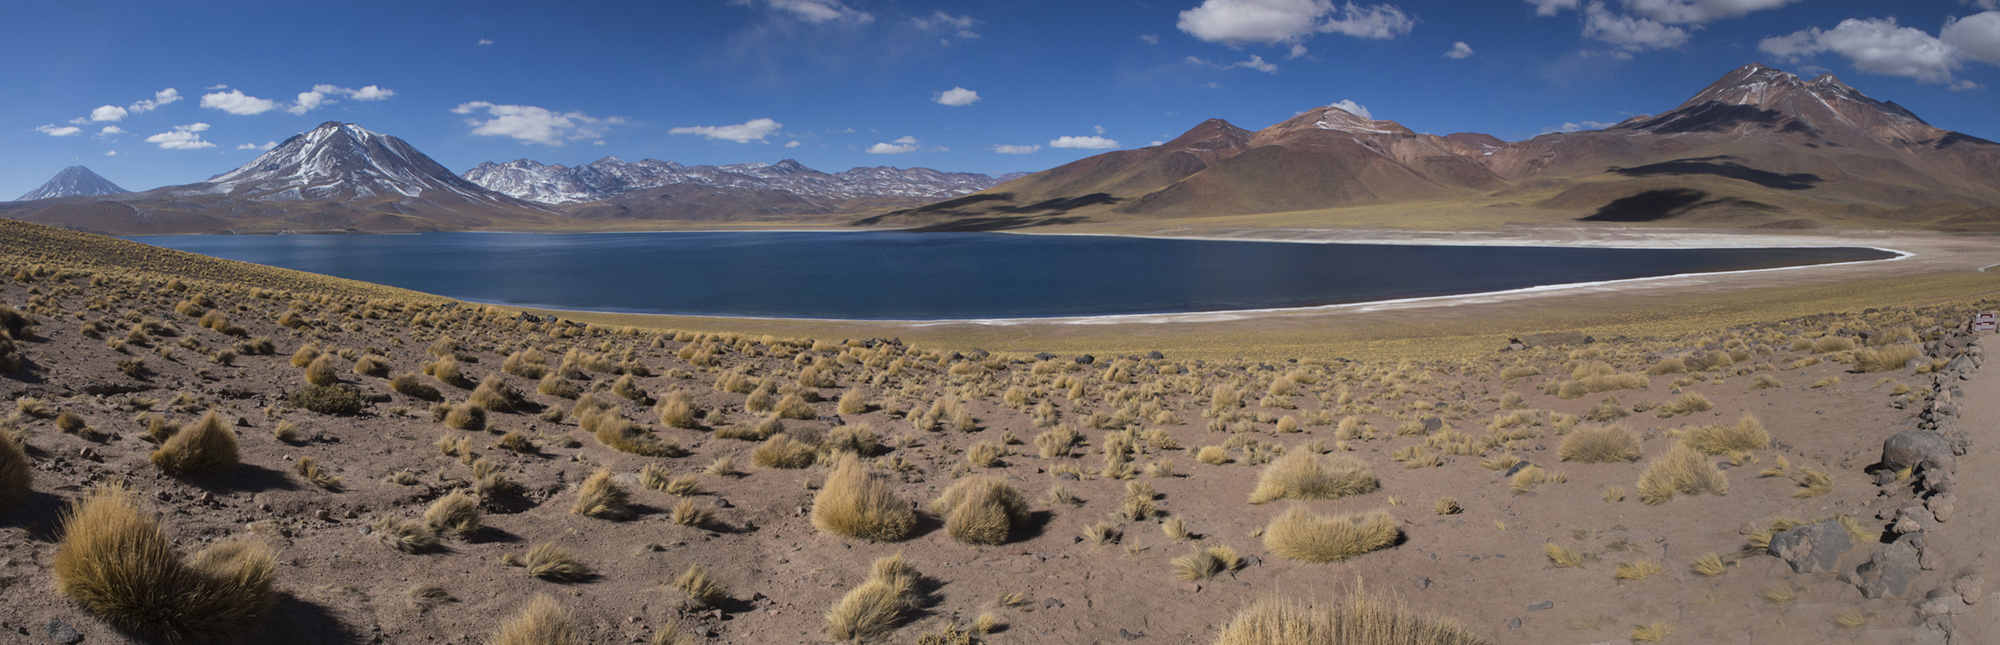 Chile, Chili, south america, andes, nature, (c) Bart Coolen, photography